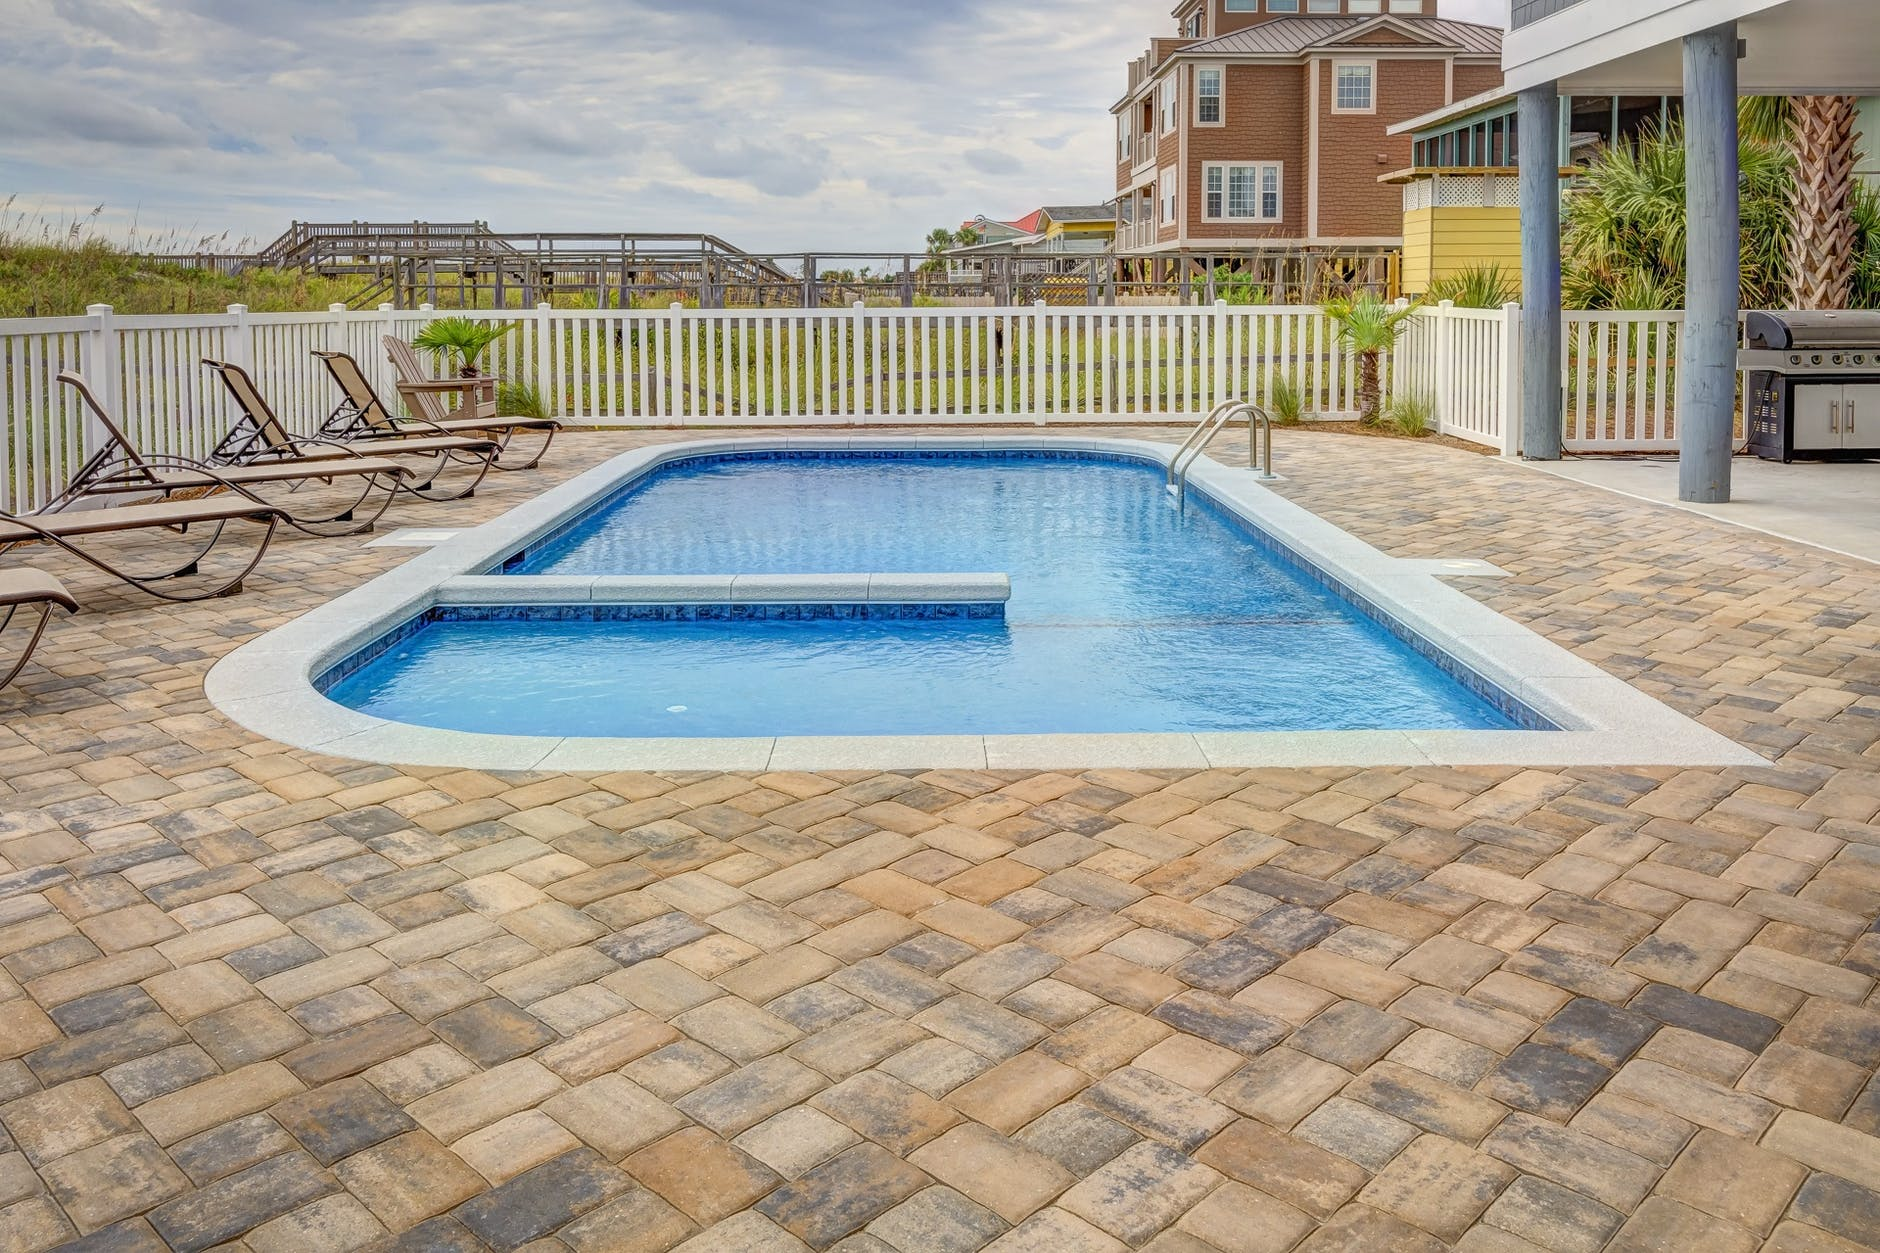 Best Types of Patio Pavers for South Florida's Climate